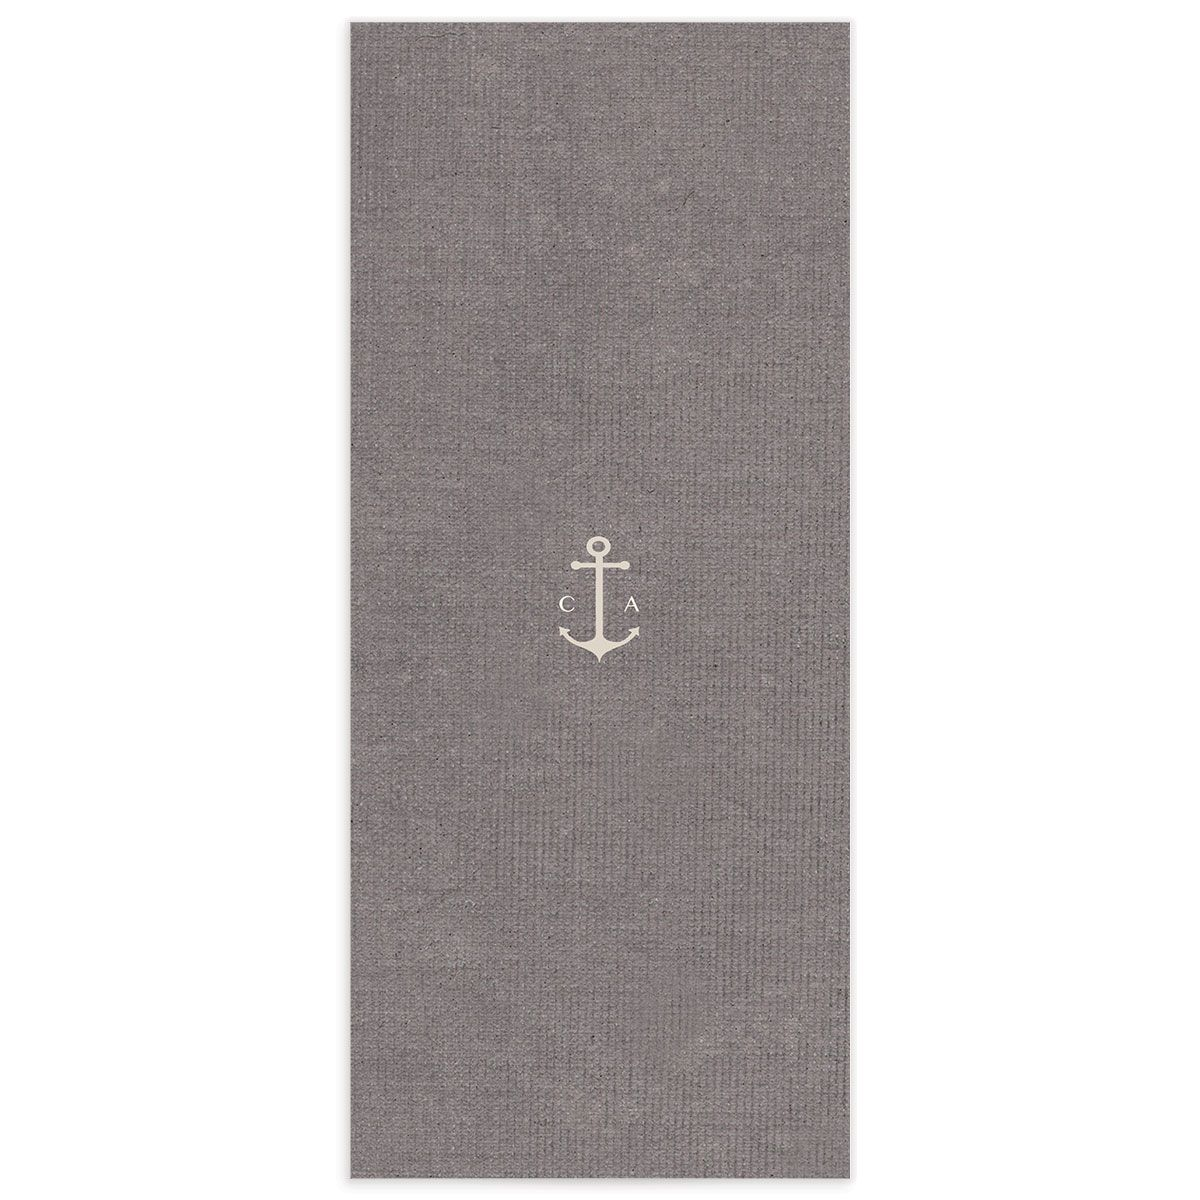 Coastal Love menus back in grey